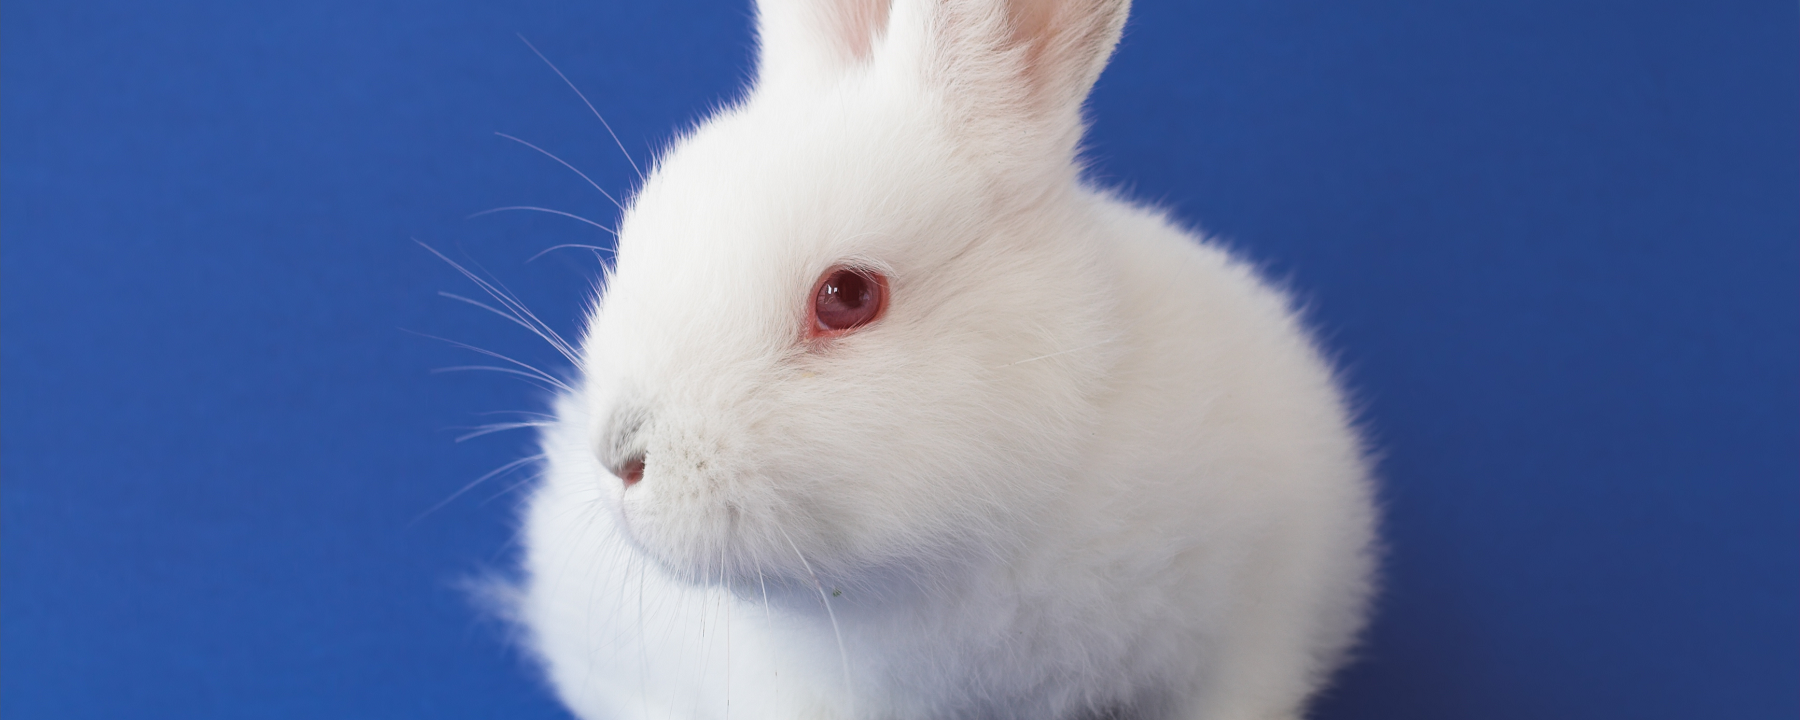 Rabbit Study May Hint at Origin of Female Orgasm in Humans